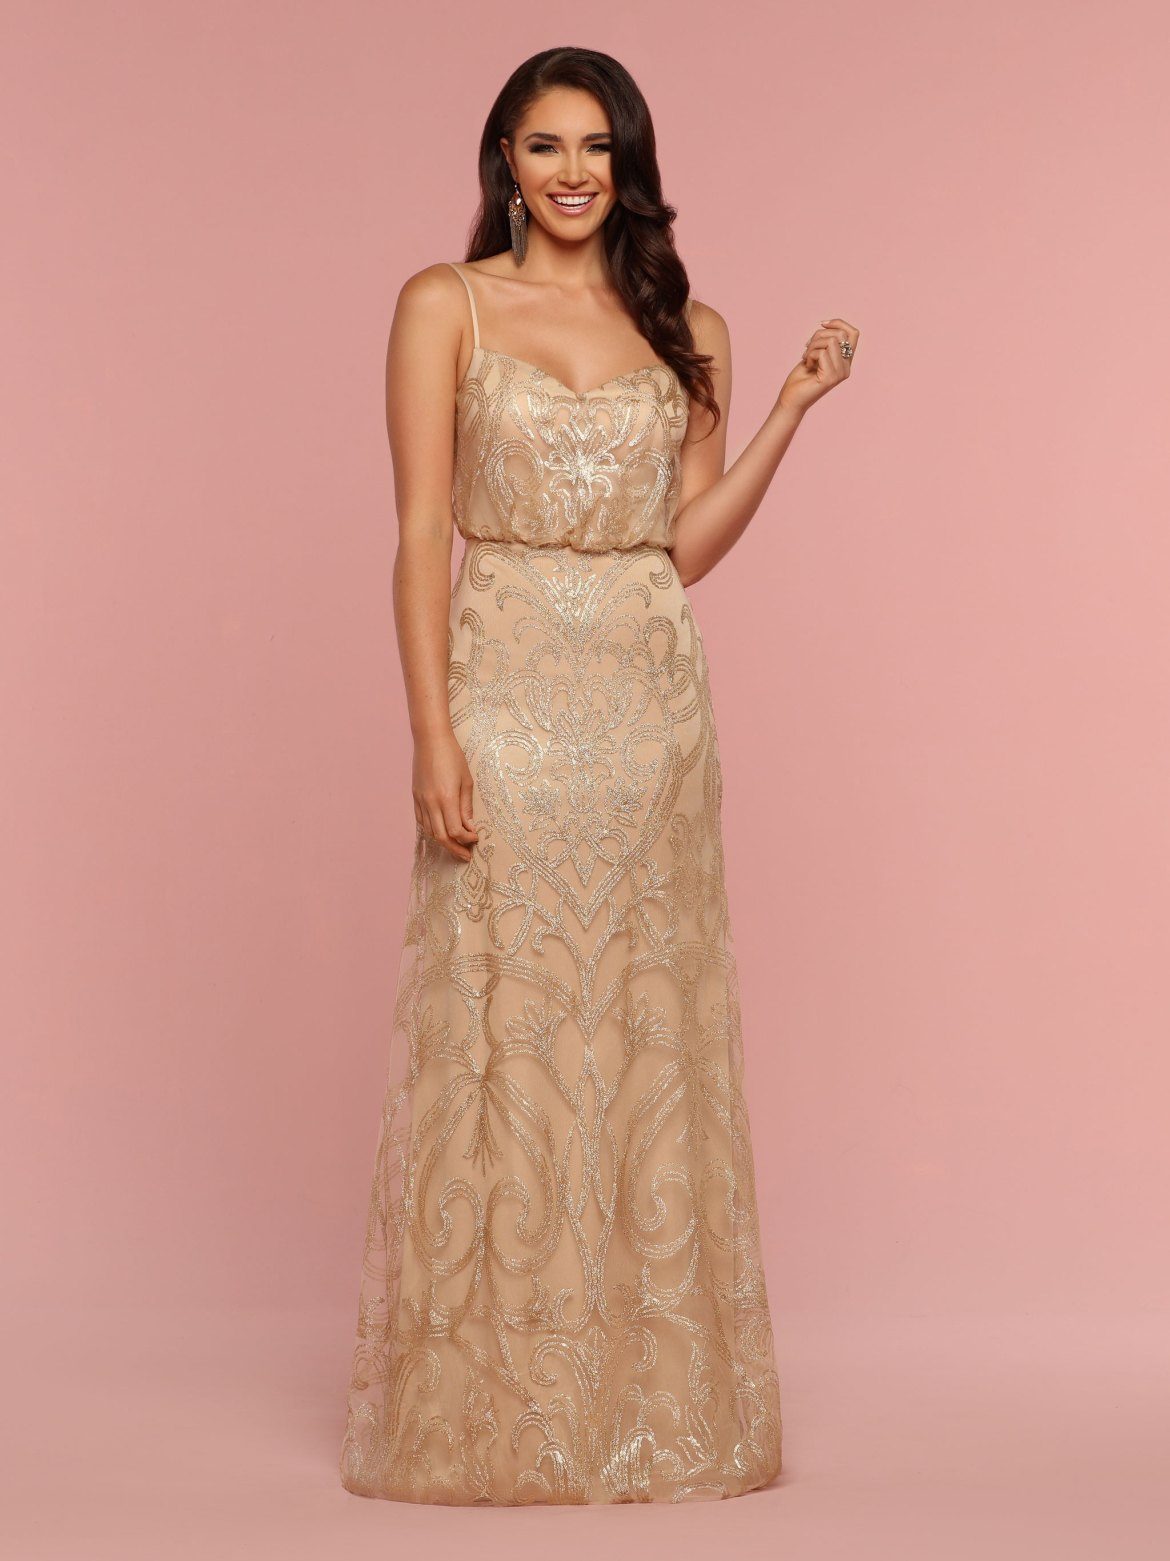 Champagne & Neutral Colored Bridesmaid Dresses